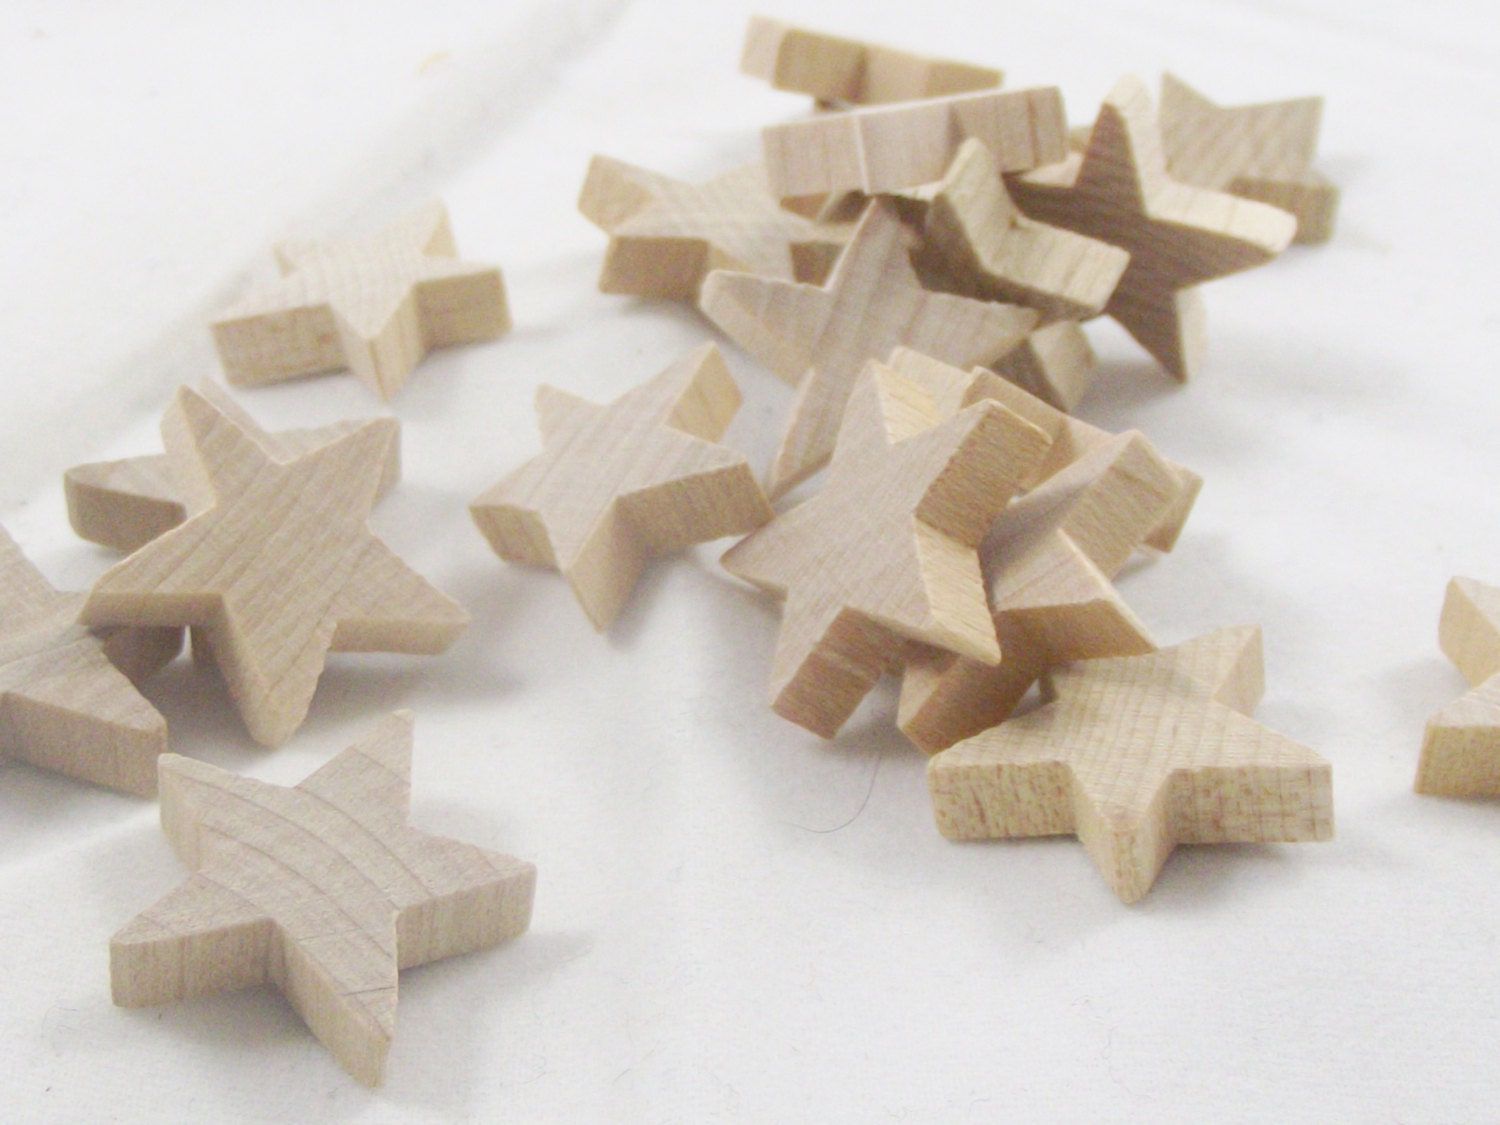 Small wooden stars ornament wood craft supplies decoration diy for Wooden craft supplies online